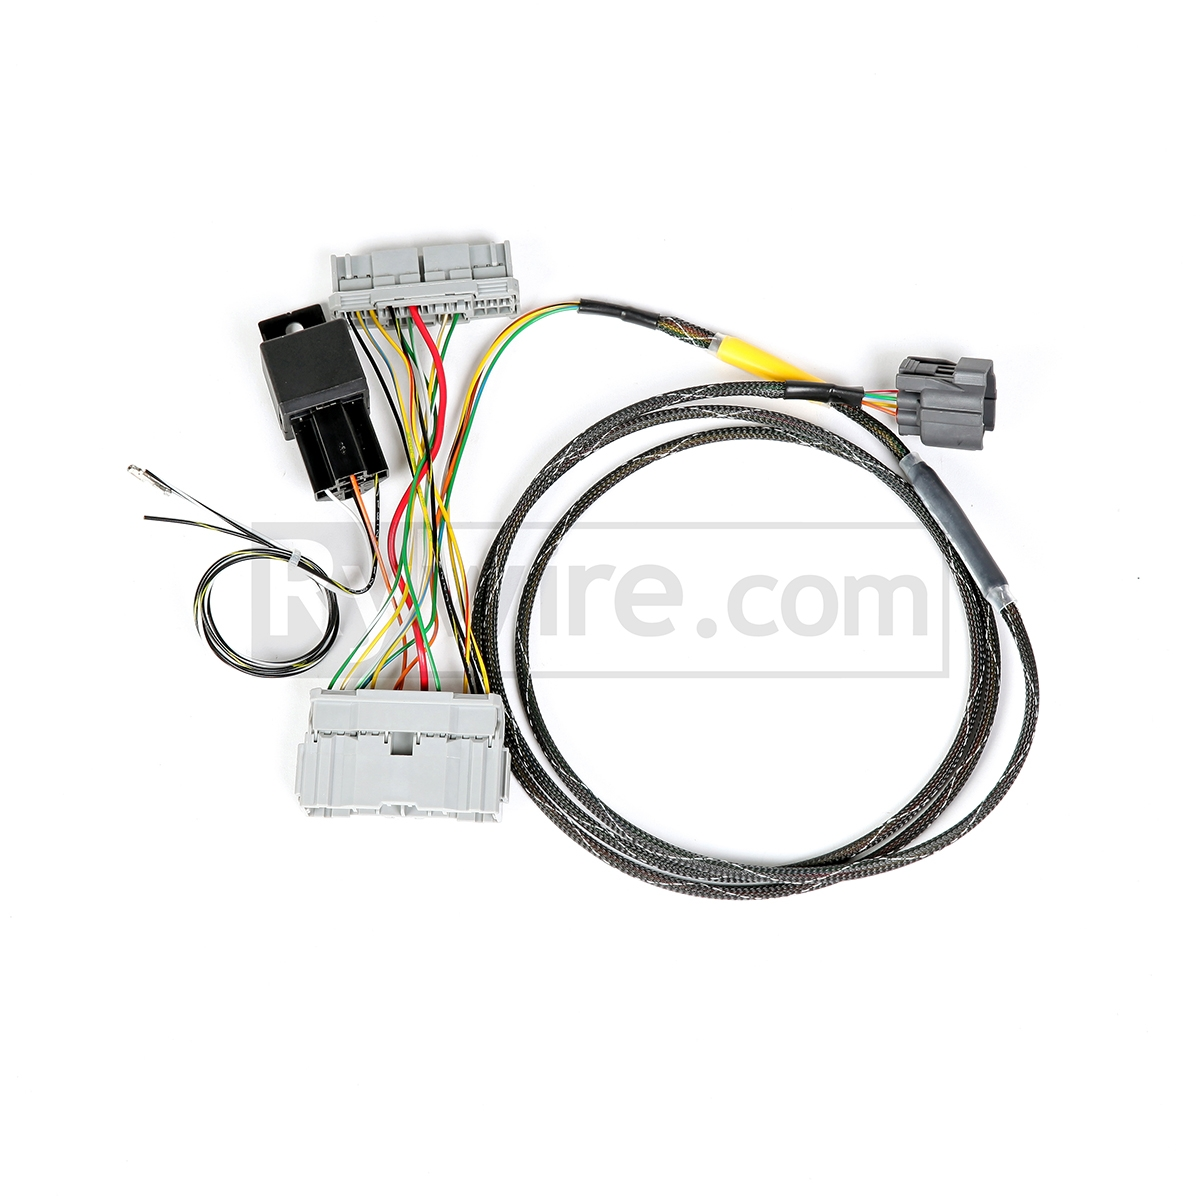 hight resolution of 01 05 civic k series conversion harness subaru wiring harness conversion rywire motorsport electronics